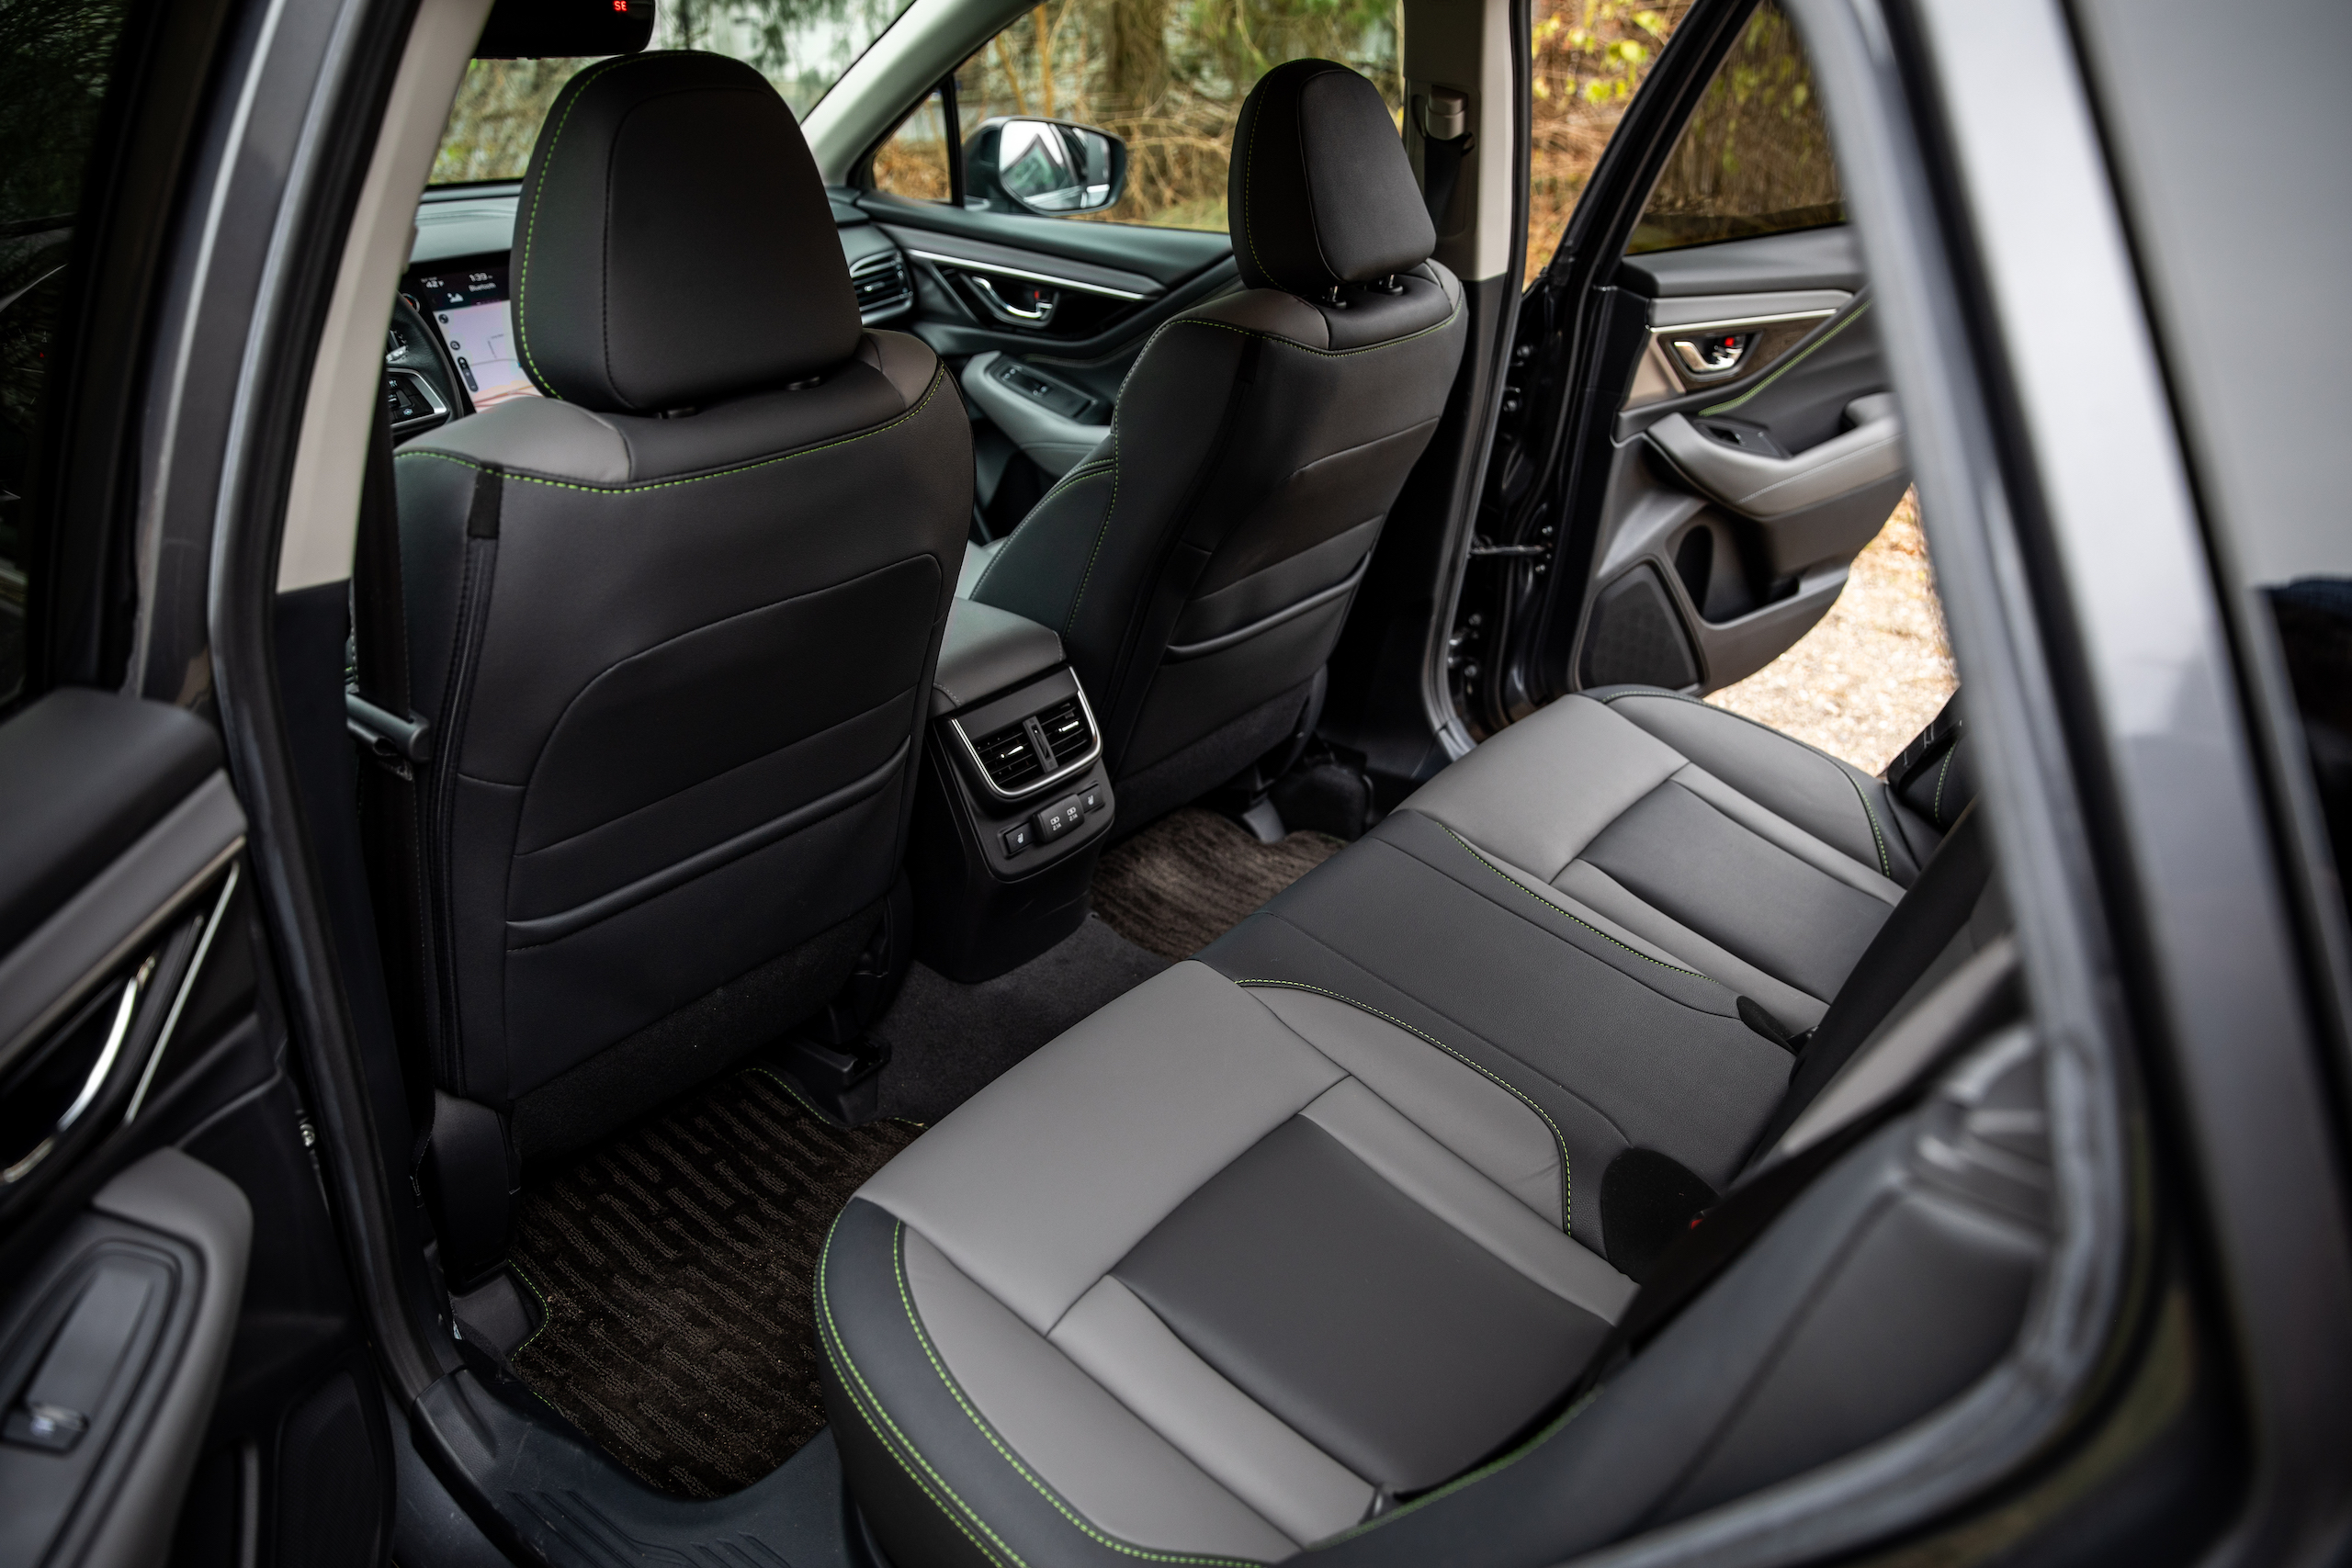 Subaru Outback interior rear seat